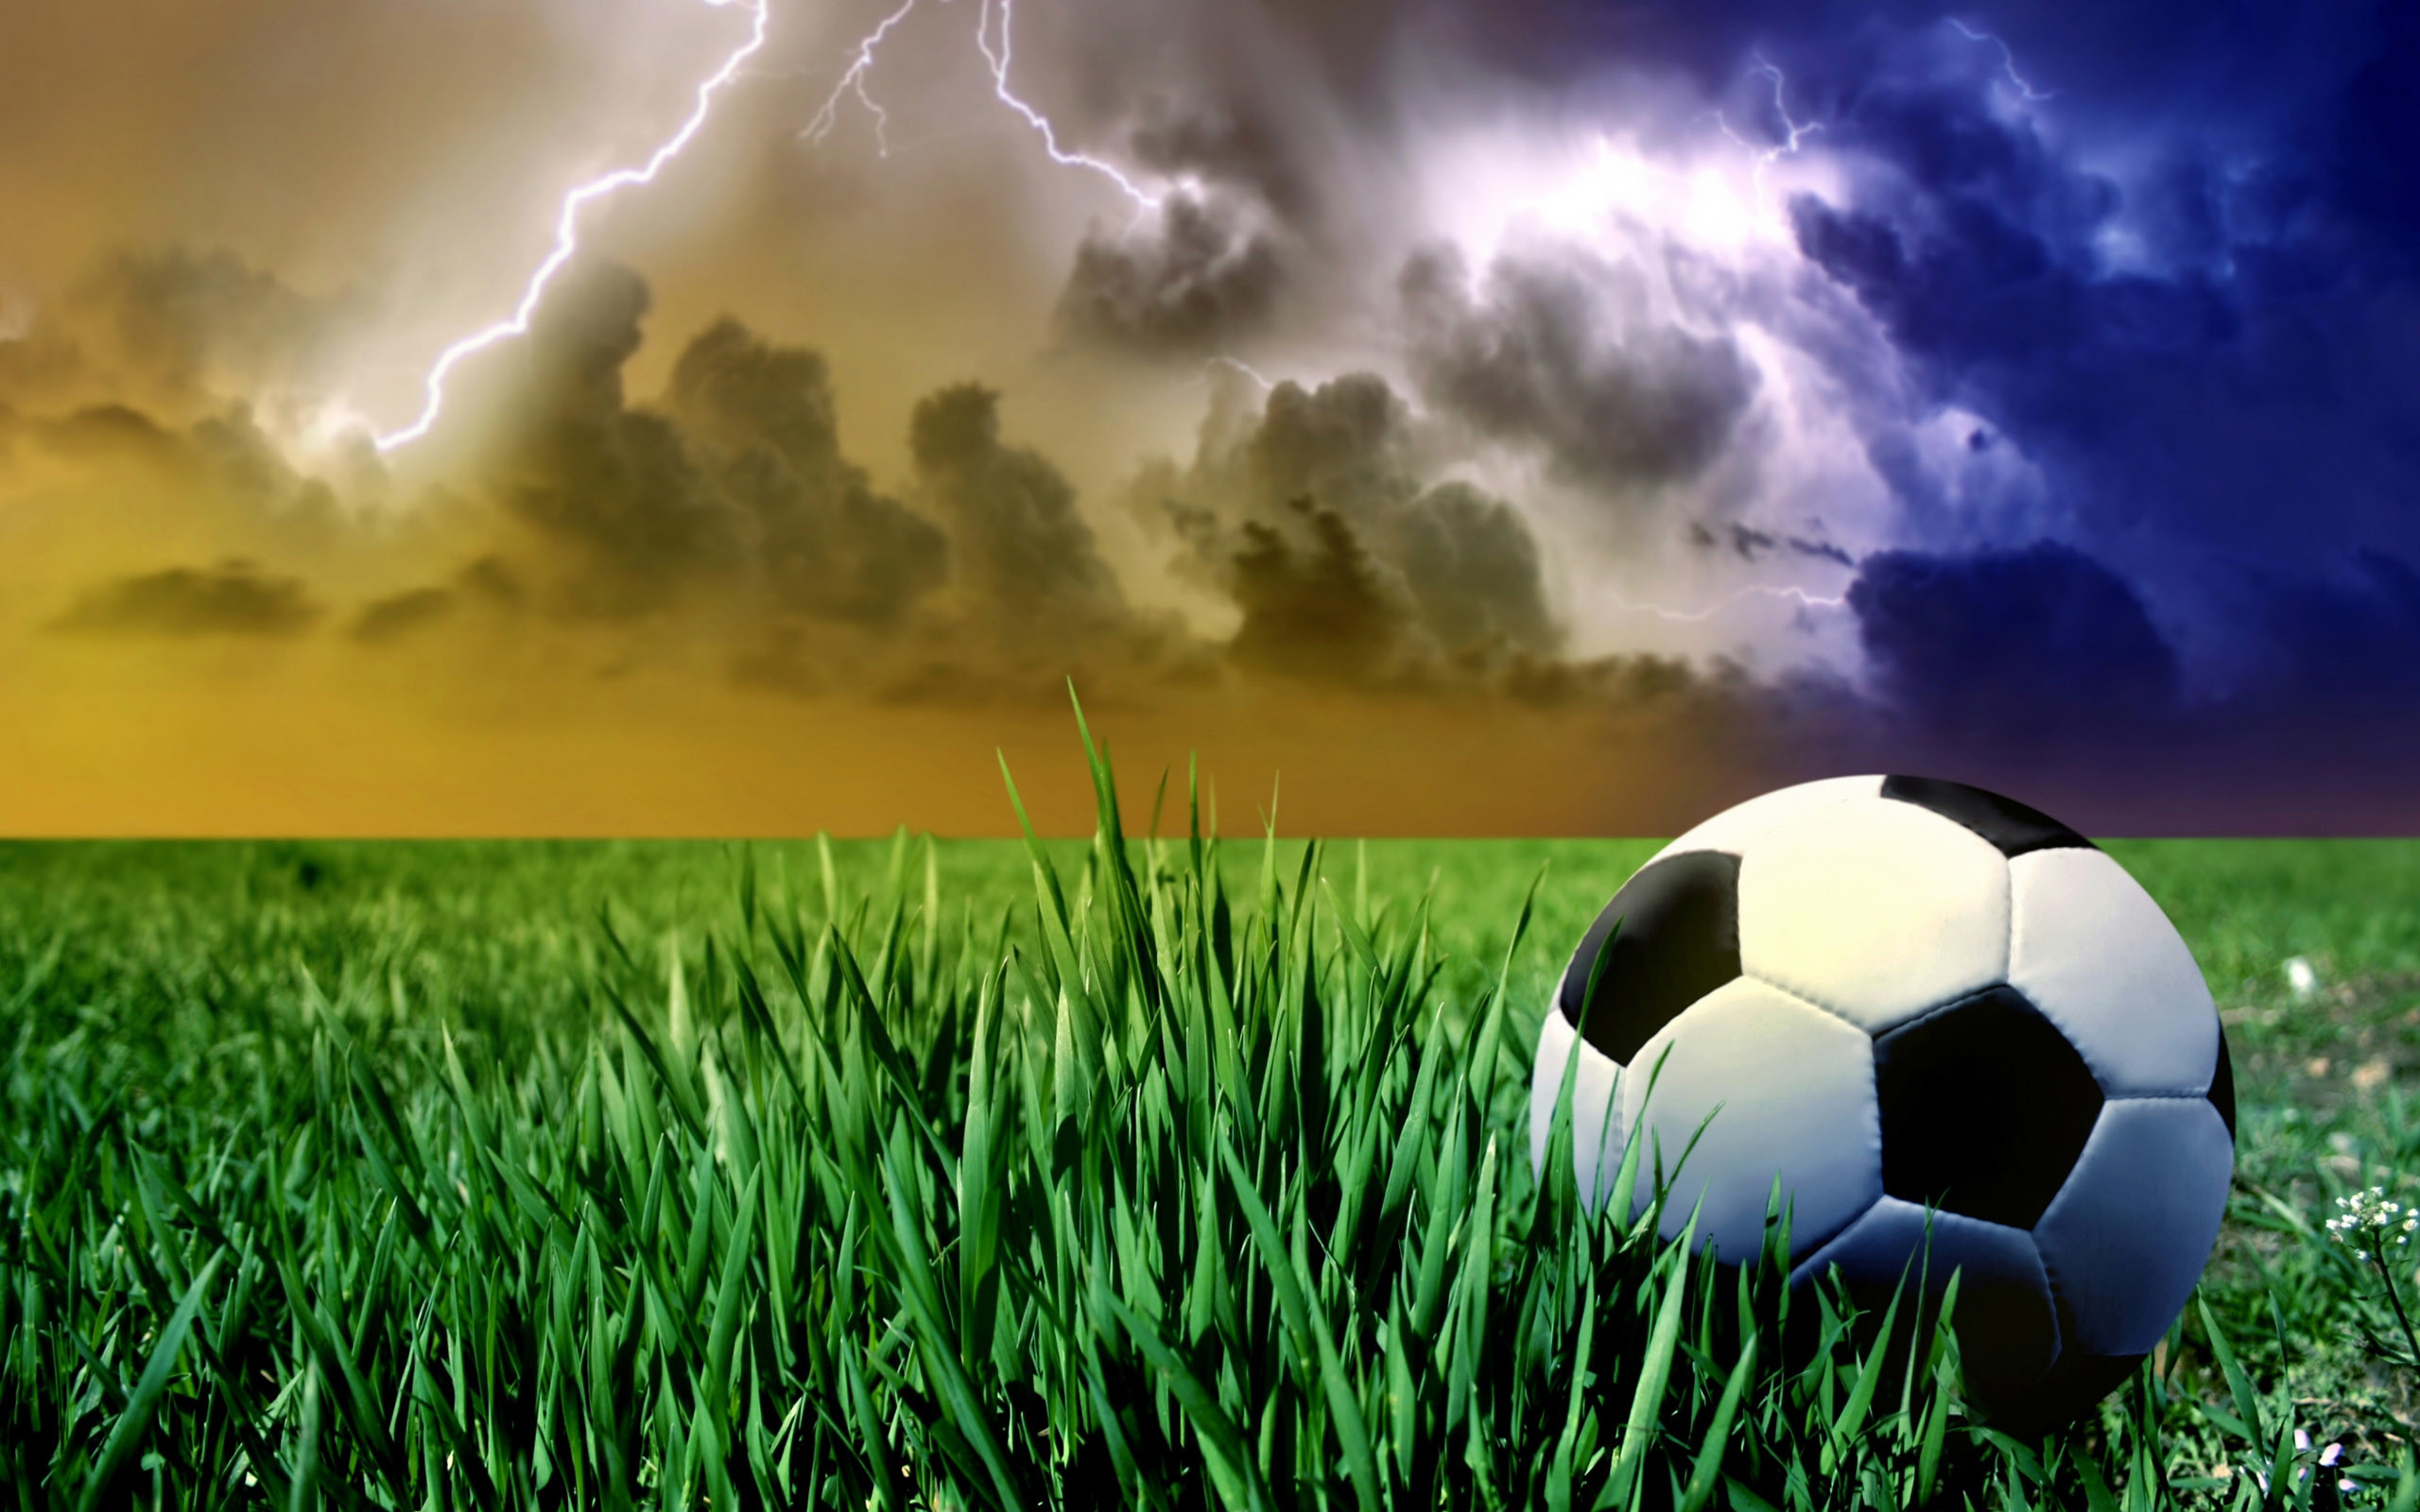 soccer backgrounds hd, high resolution football images